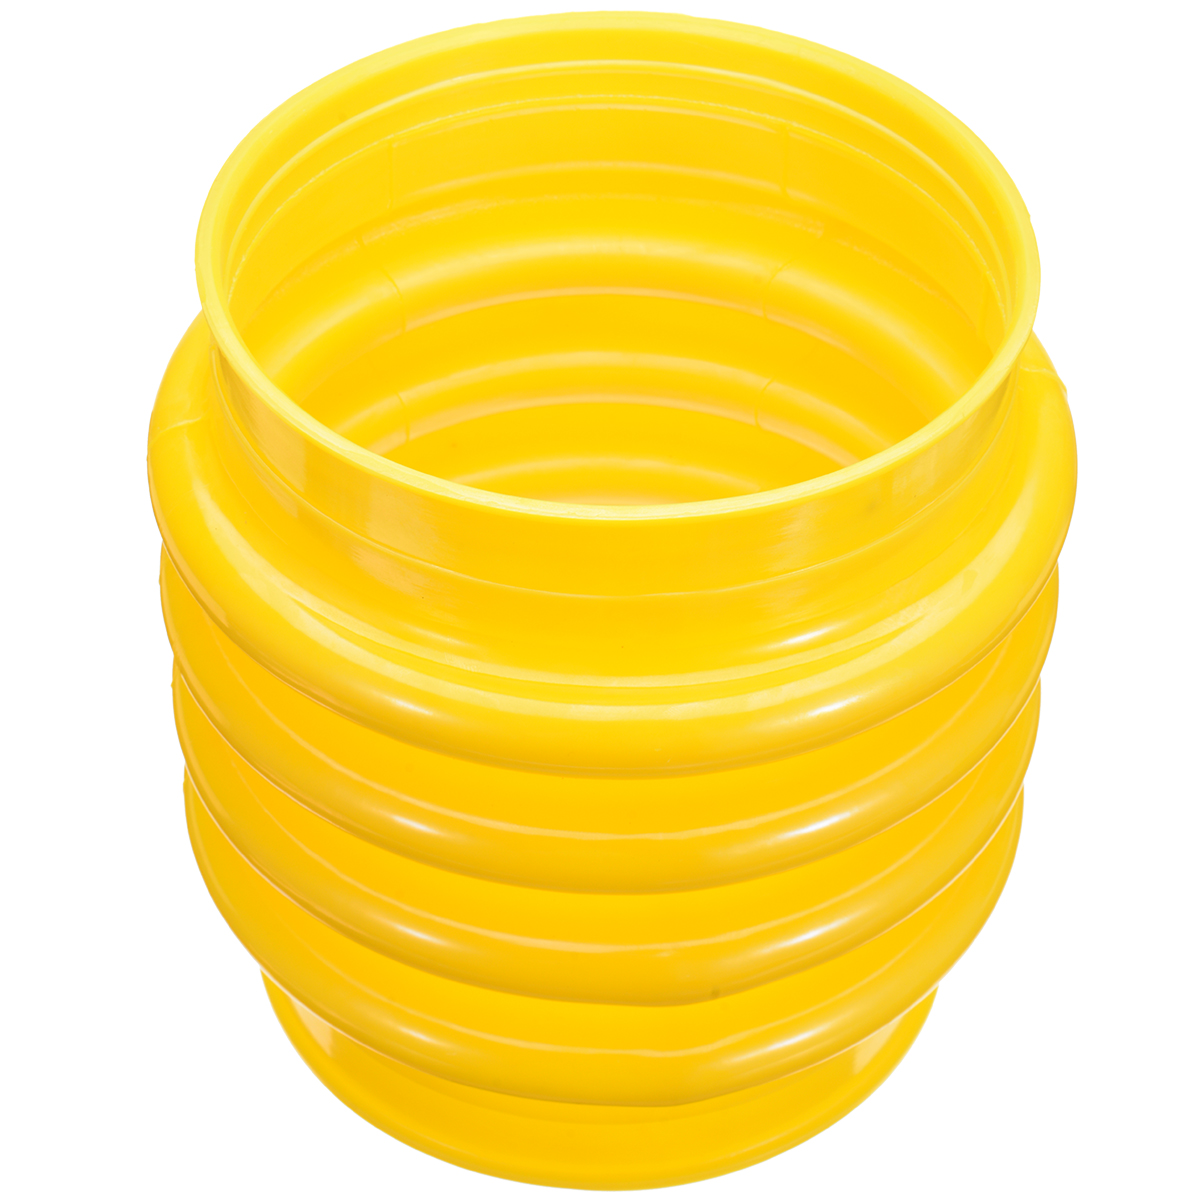 New 17.5cm Jumping Jack Bellows Boot Yellow For Wacker Rammer Compactor Tamper Power Tools AccessoriesNew 17.5cm Jumping Jack Bellows Boot Yellow For Wacker Rammer Compactor Tamper Power Tools Accessories